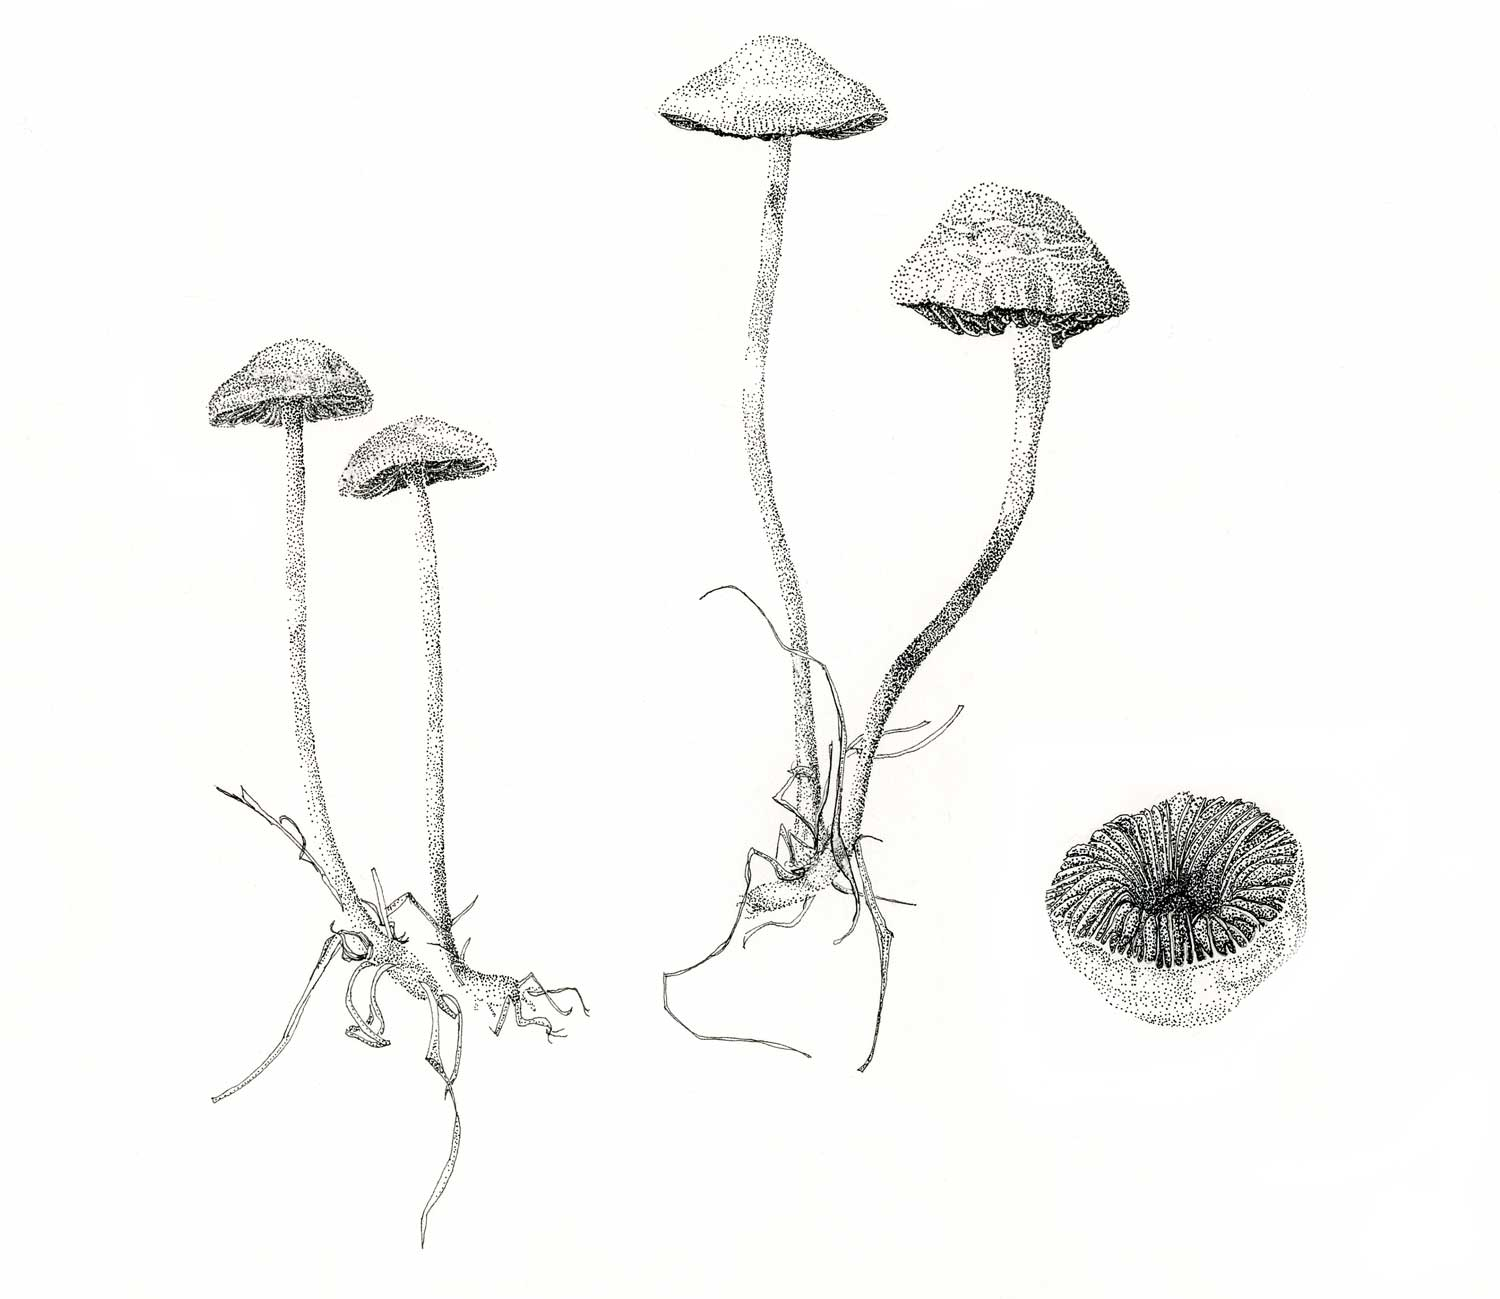 Mushroom study. Pen and ink on paper